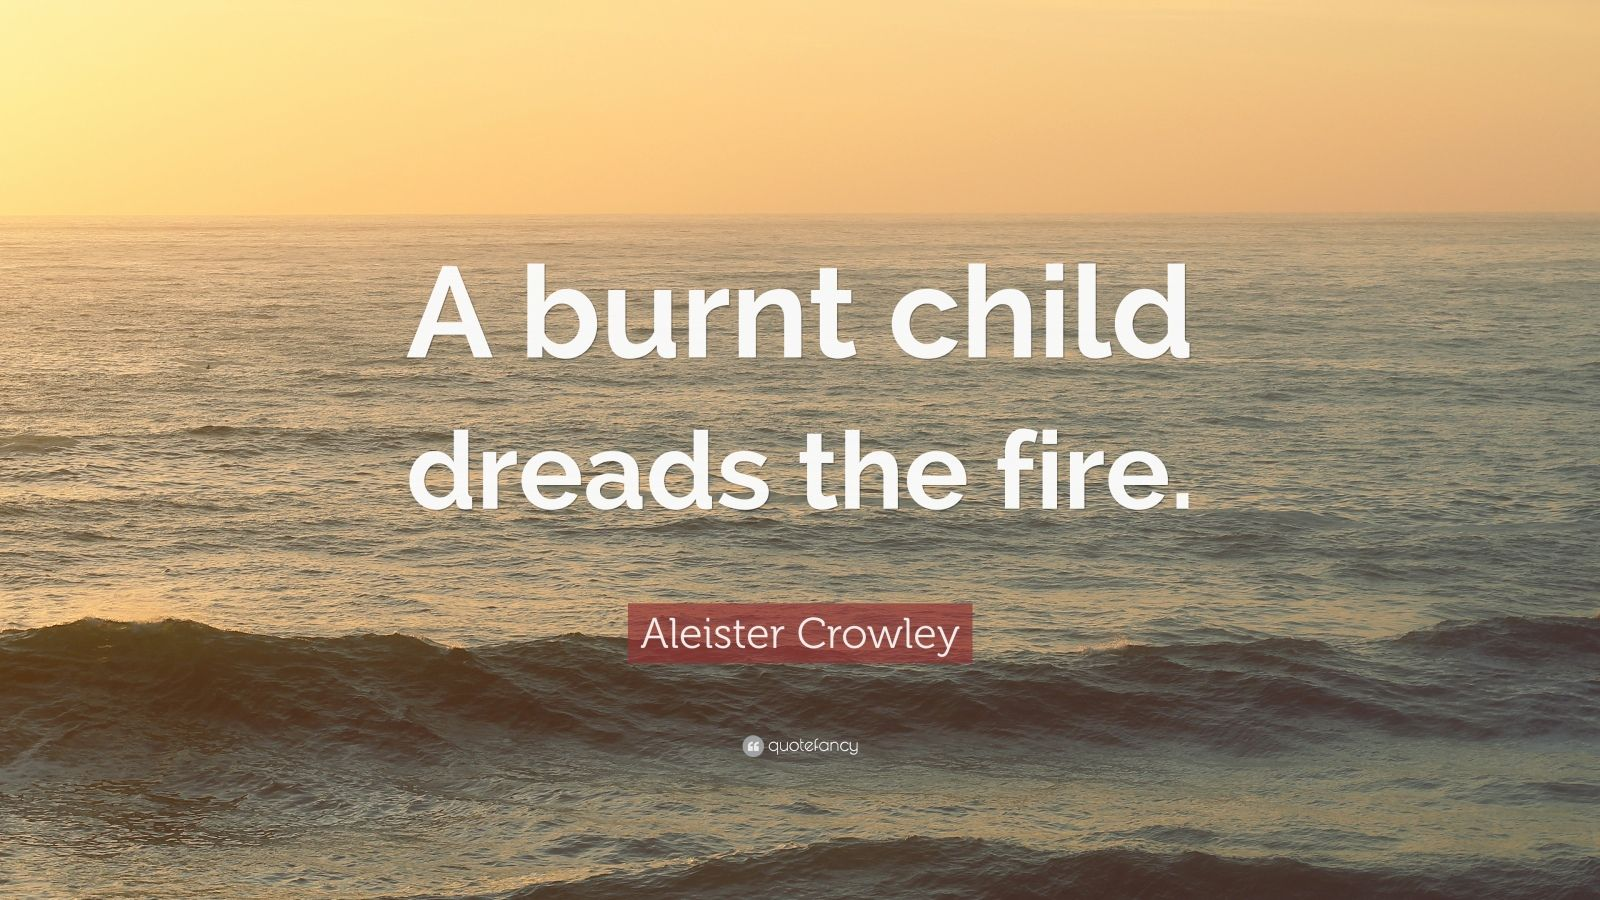 a burnt child dreads fire Free essays on a burnt child dreads the fire essay get help with your writing 1 through 30.